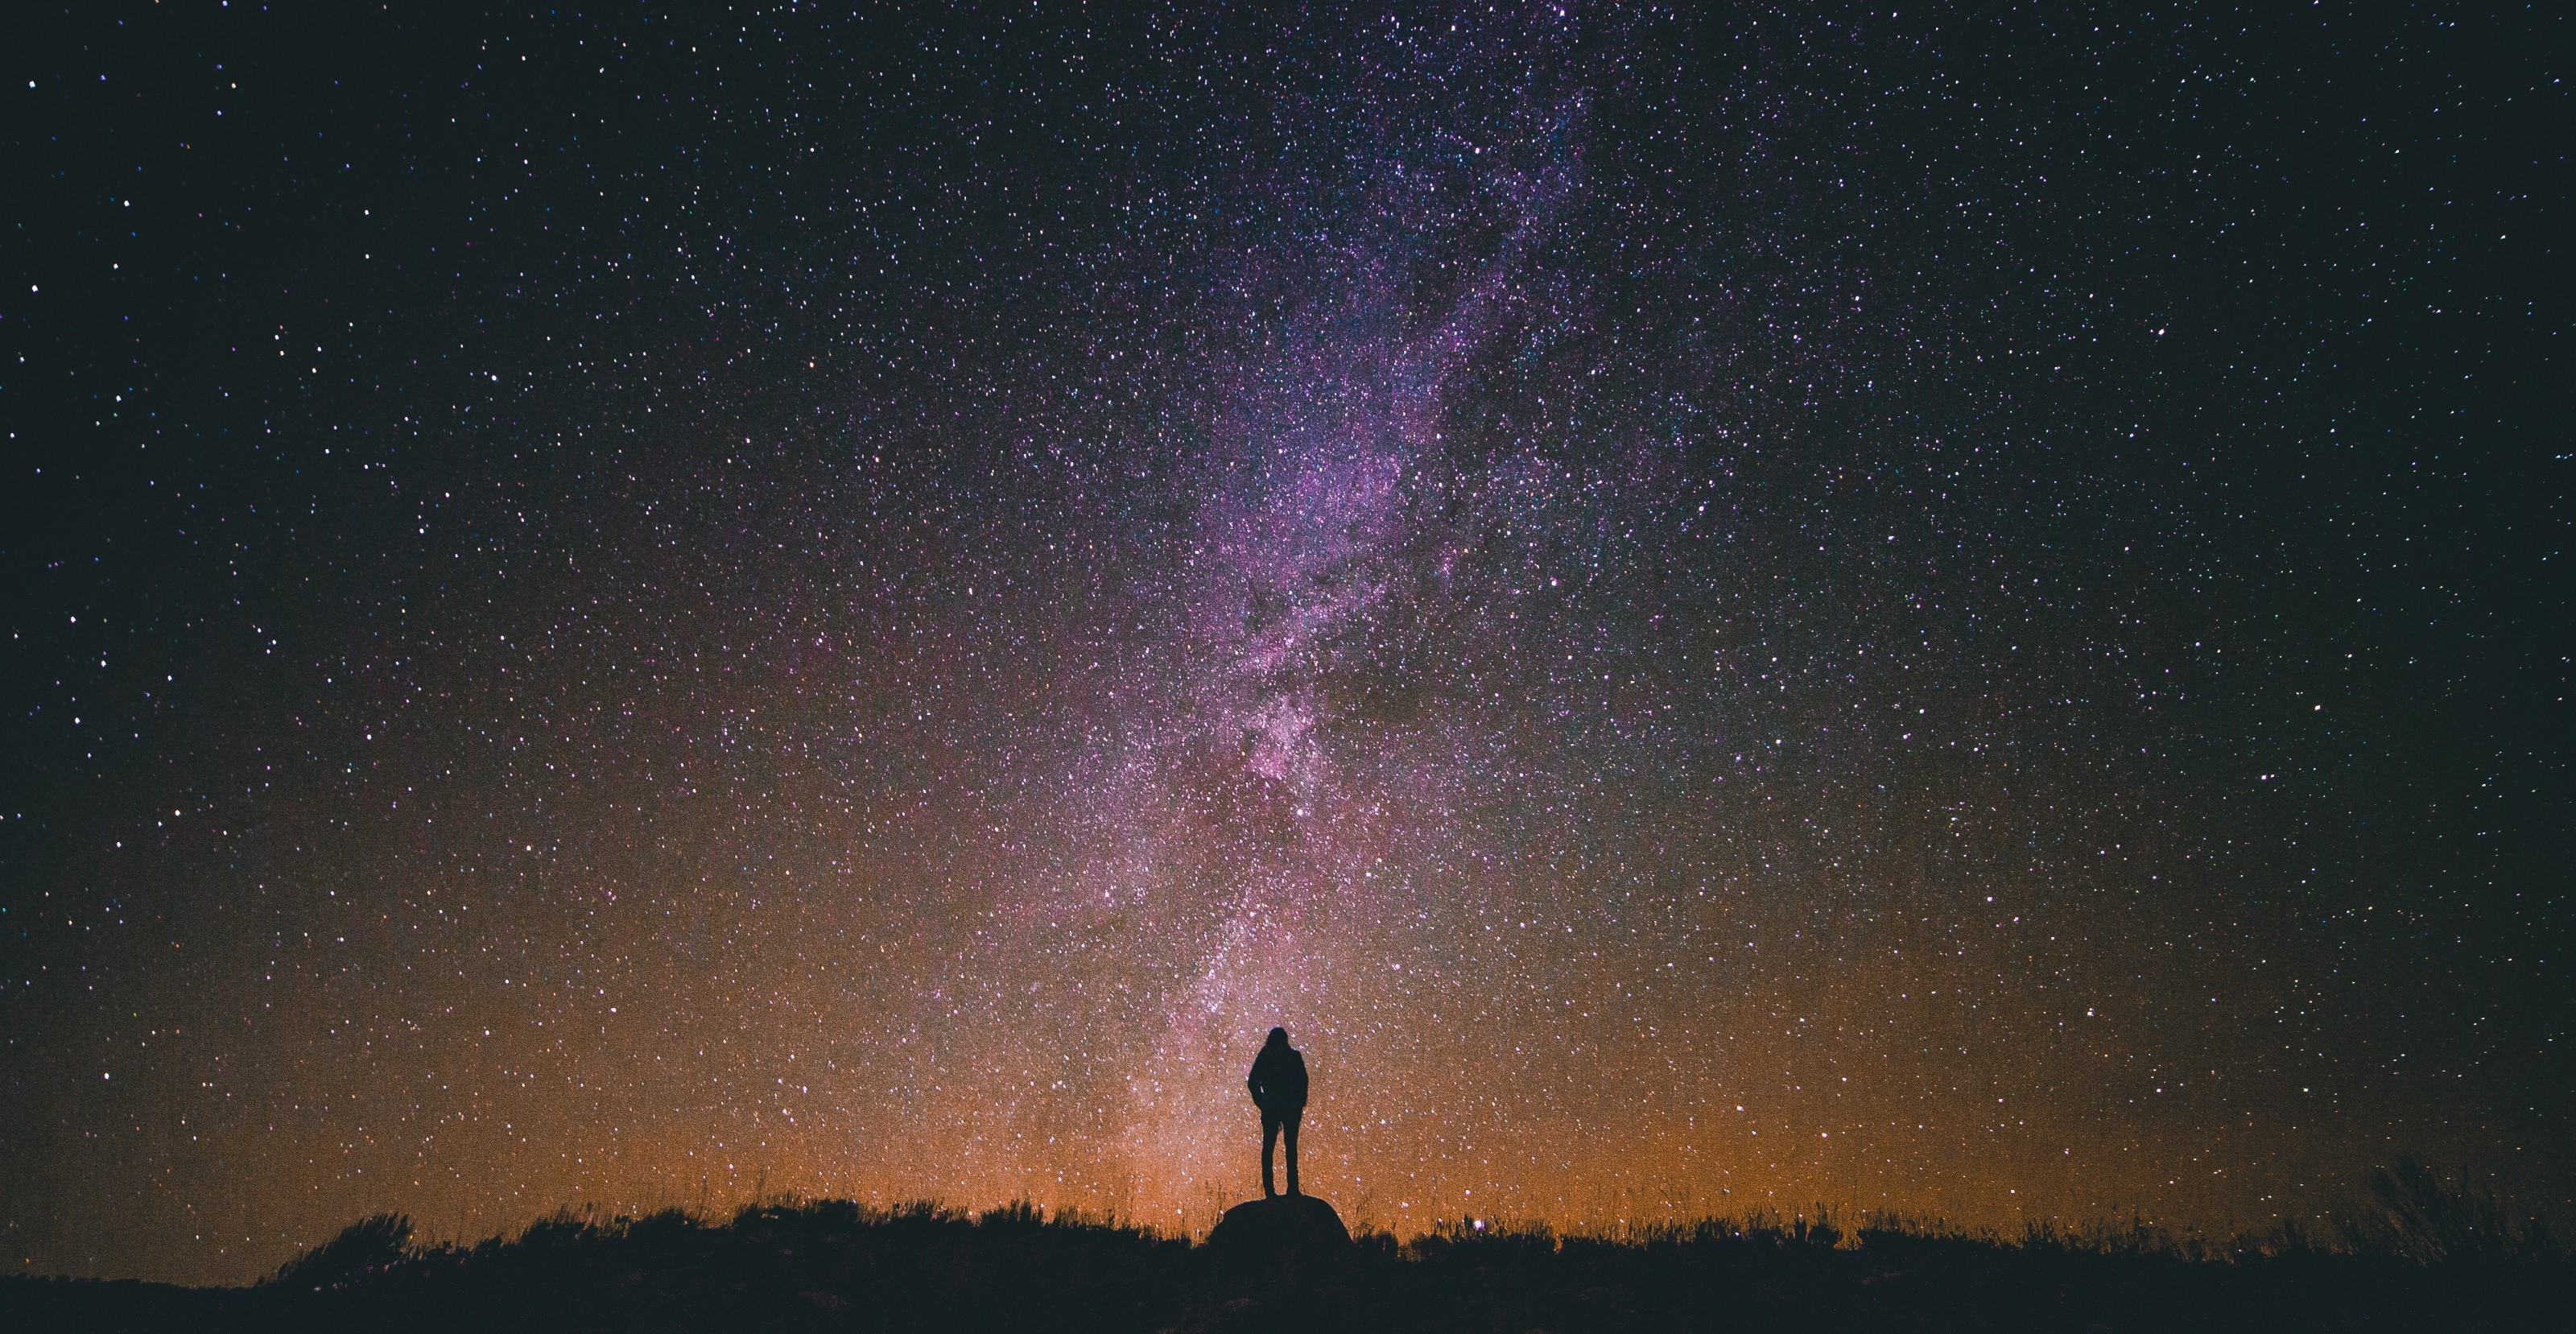 Looking at milky way, Common creative images, Night, Tourist, Stars, HQ Photo